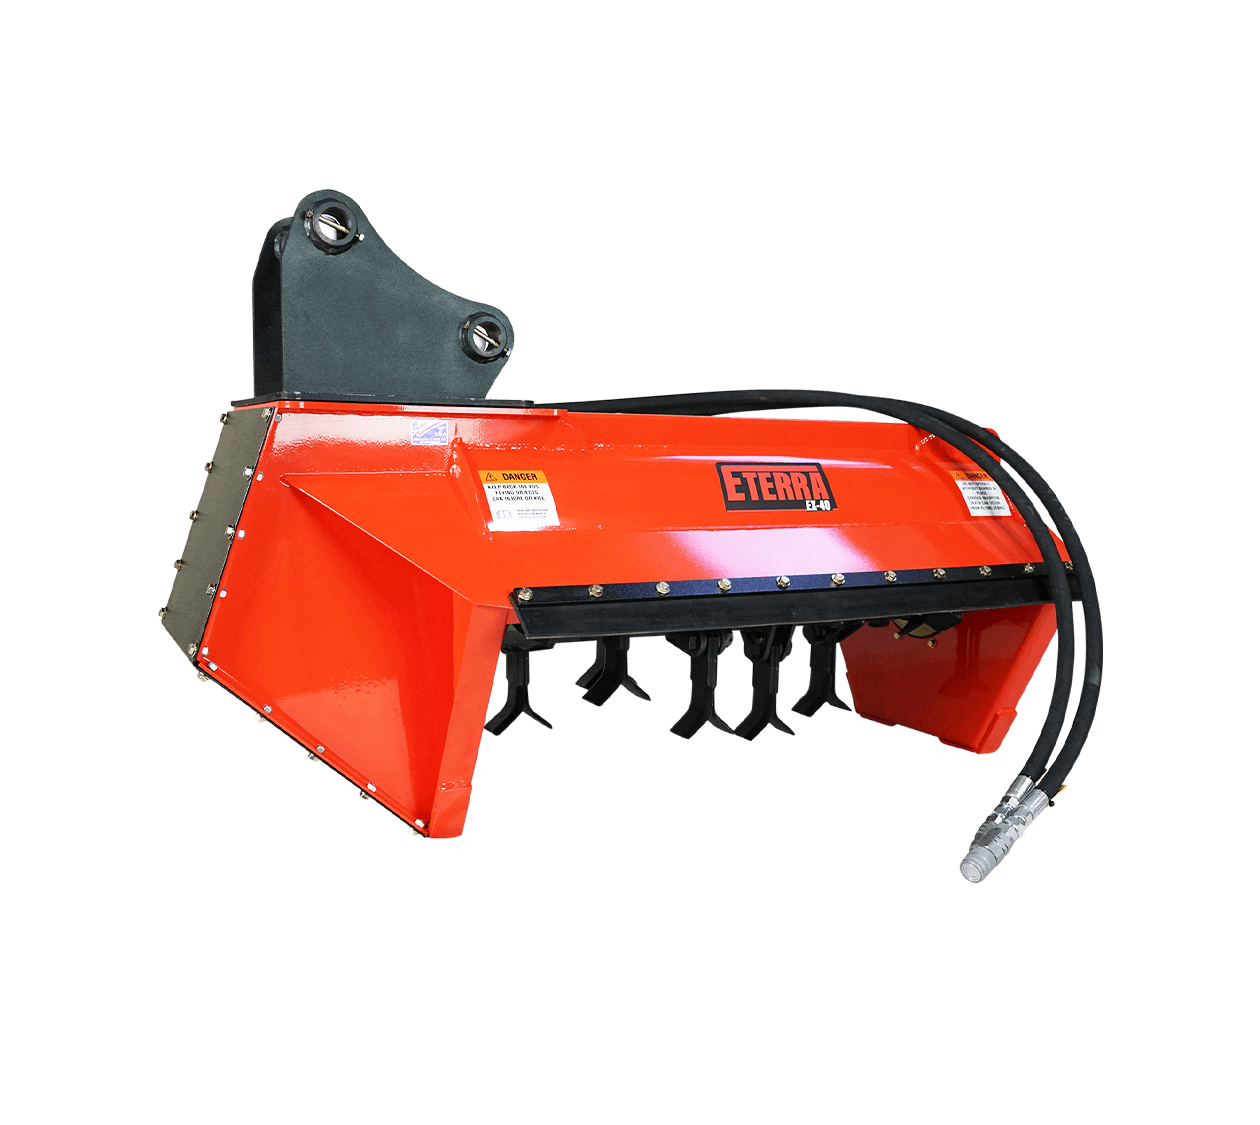 Eterra EX-40 Excavator Flail Mower Attachment White Background side angle